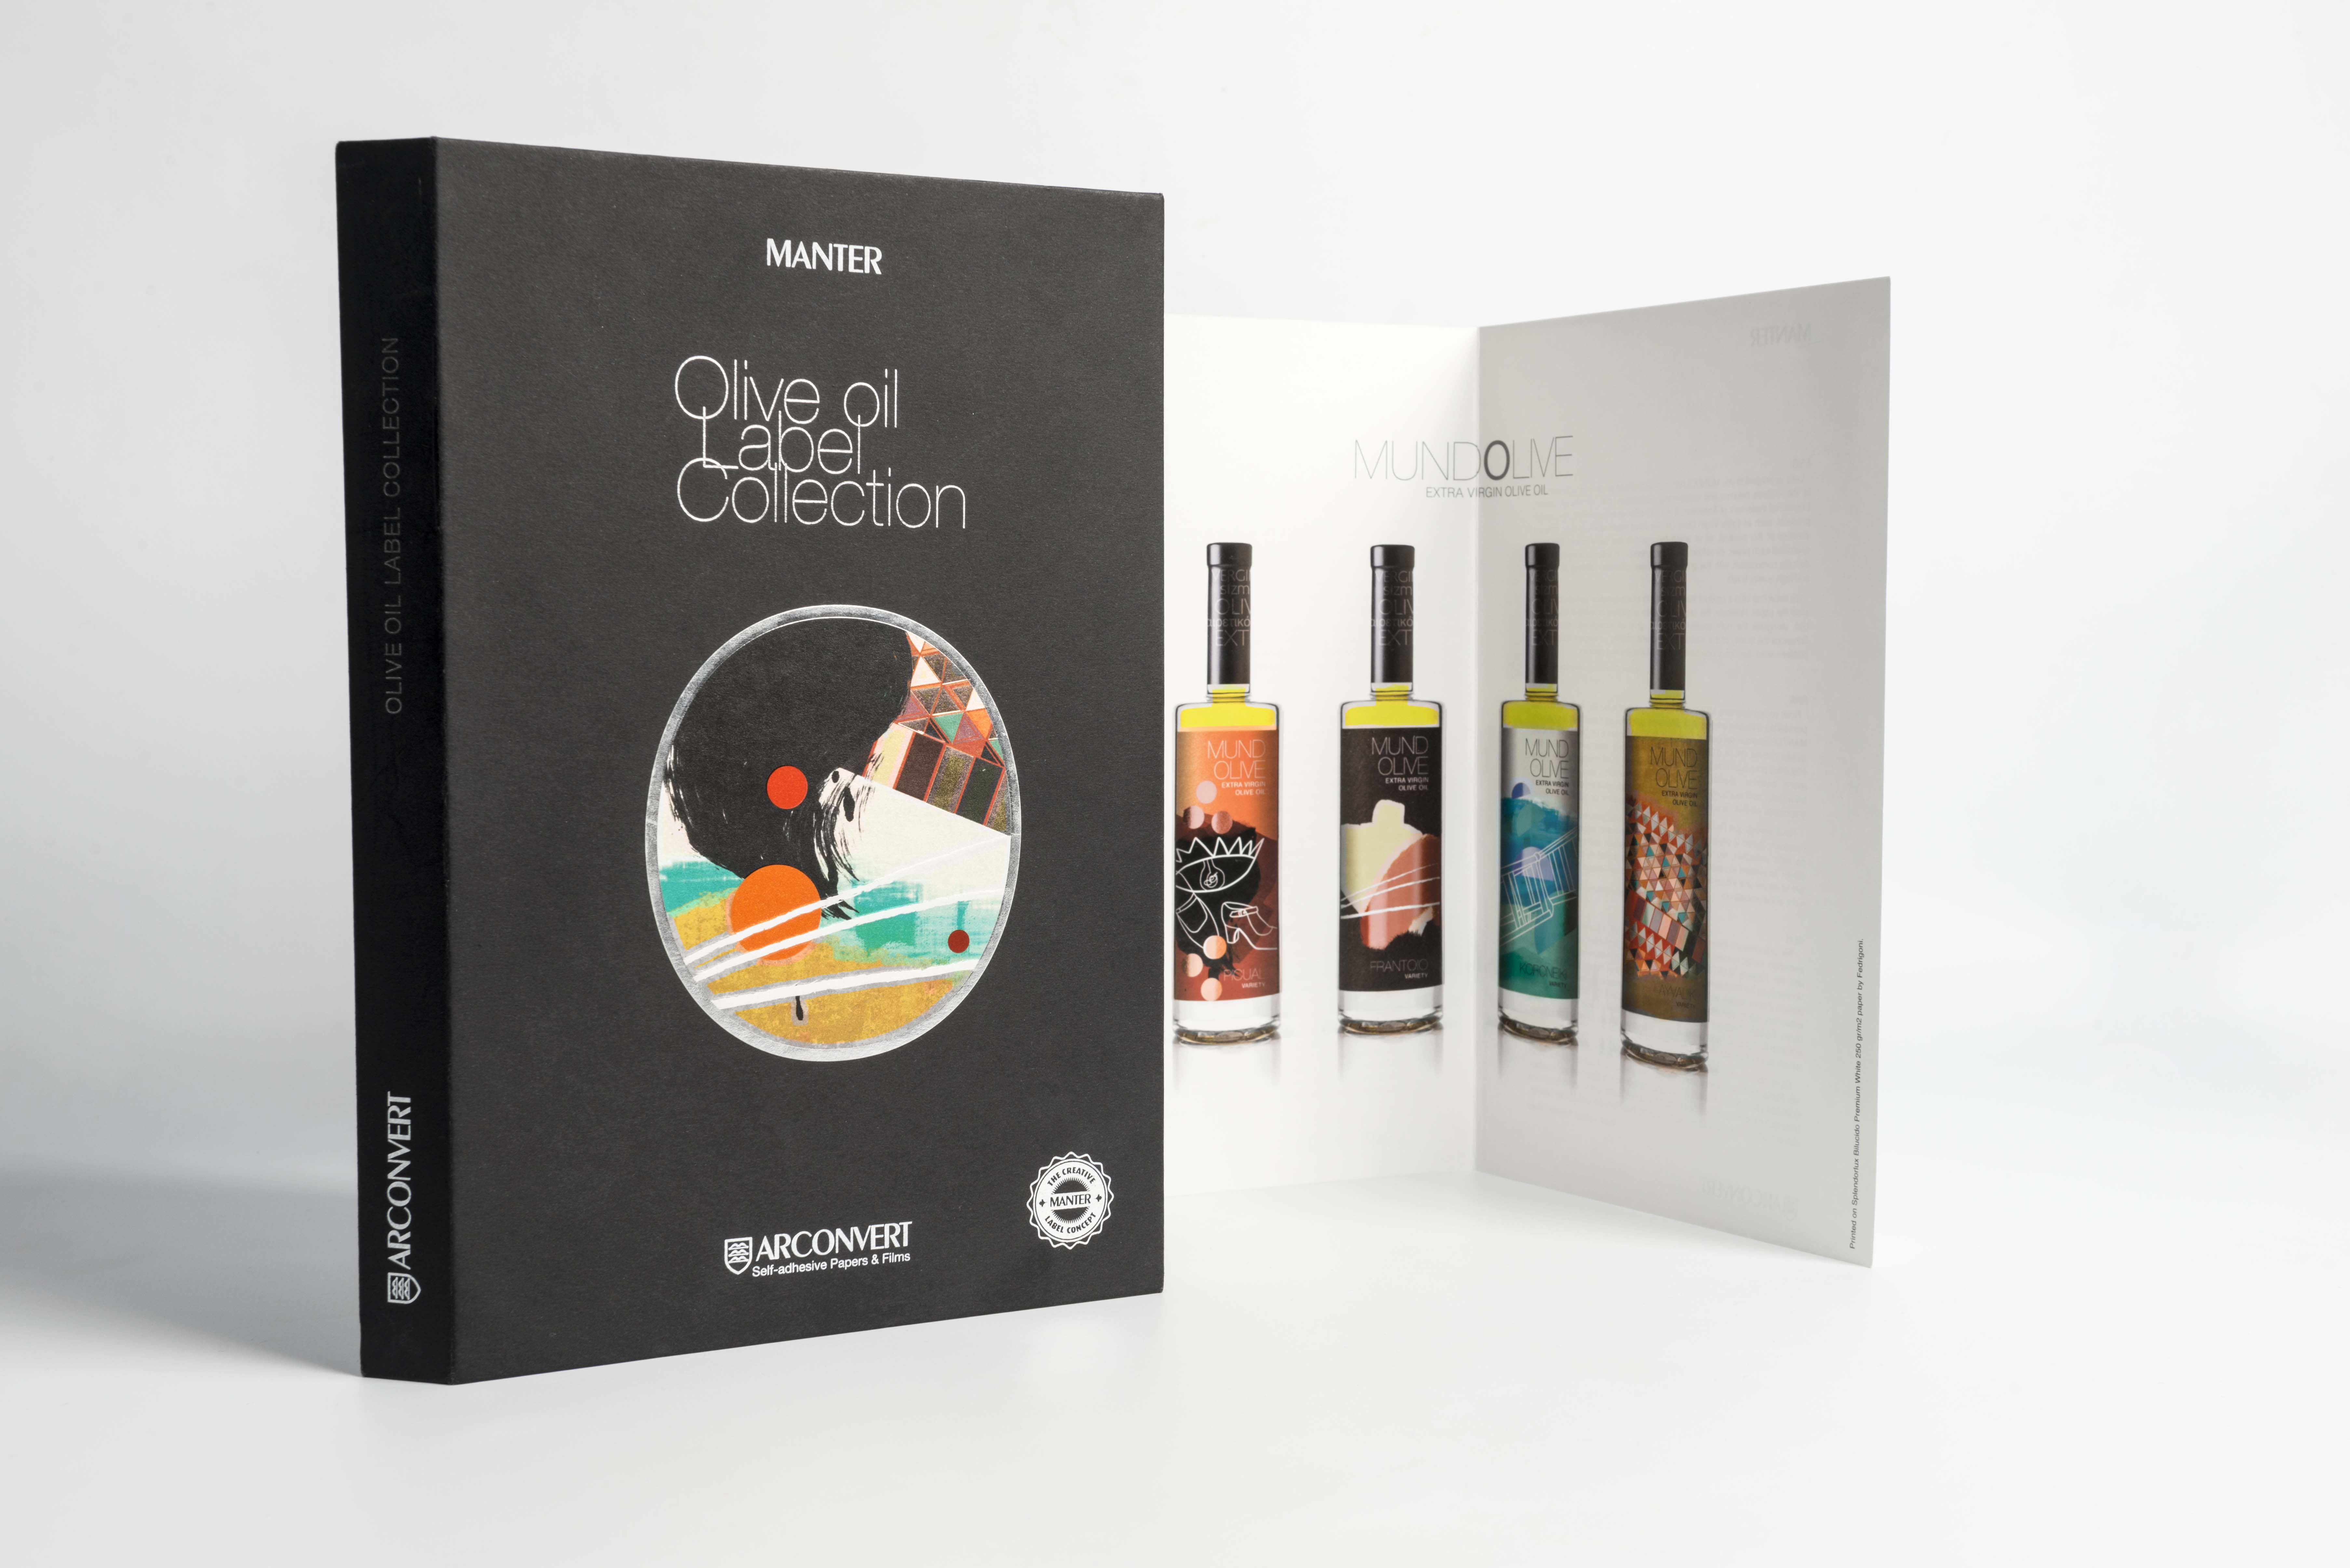 olive-oil-label-collection